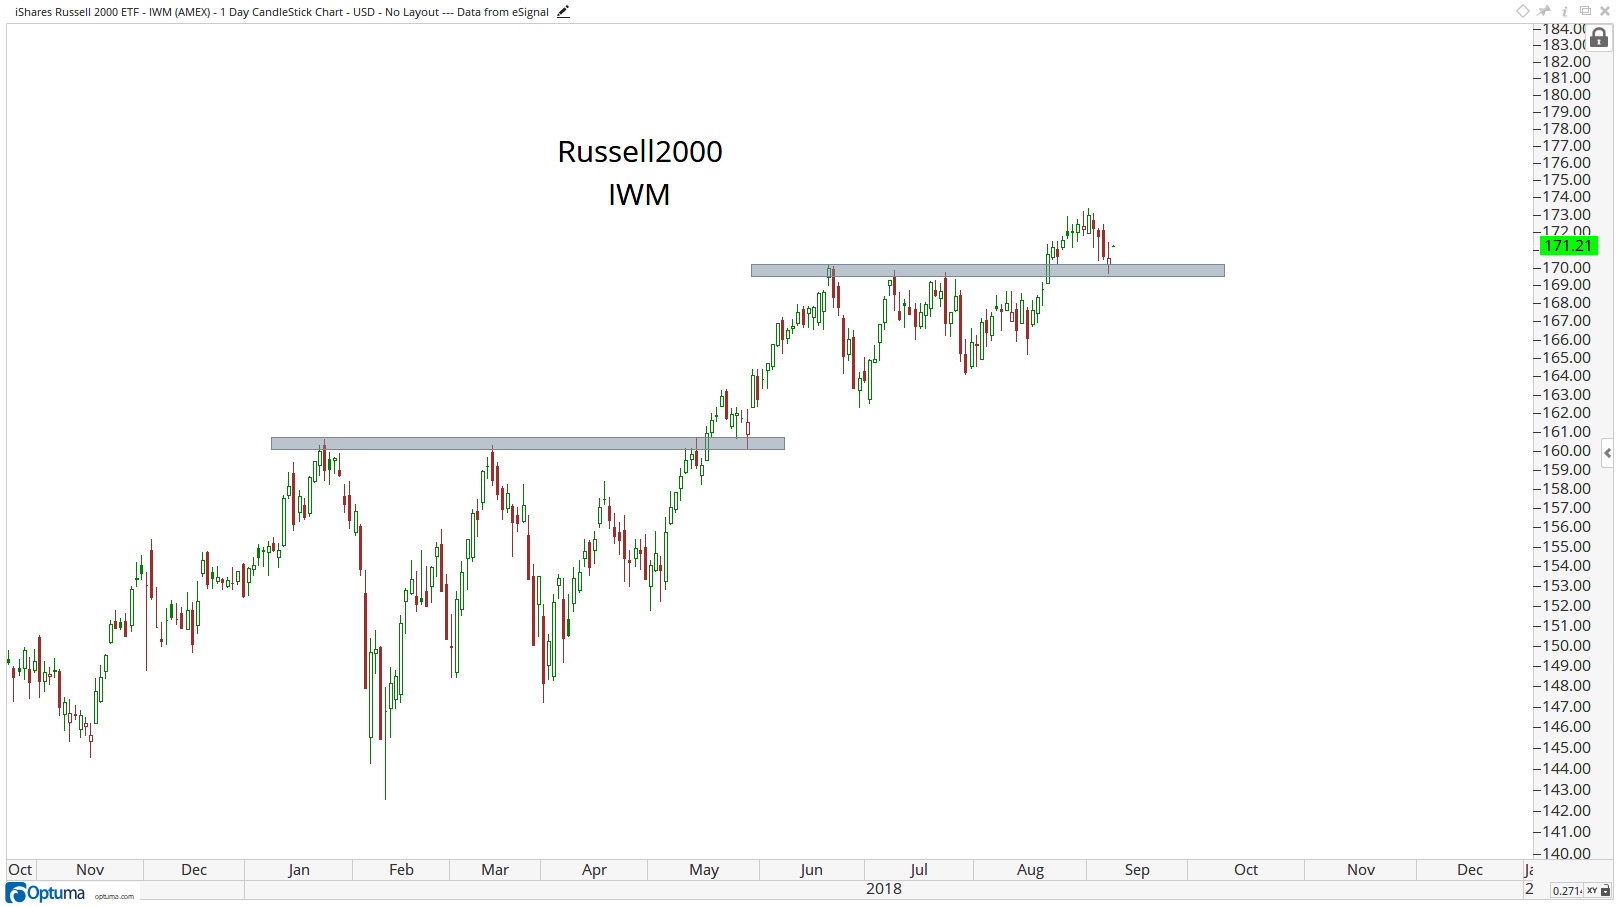 Technical chart showing the performance of the the iShares Russell 2000 ETF (IWM)